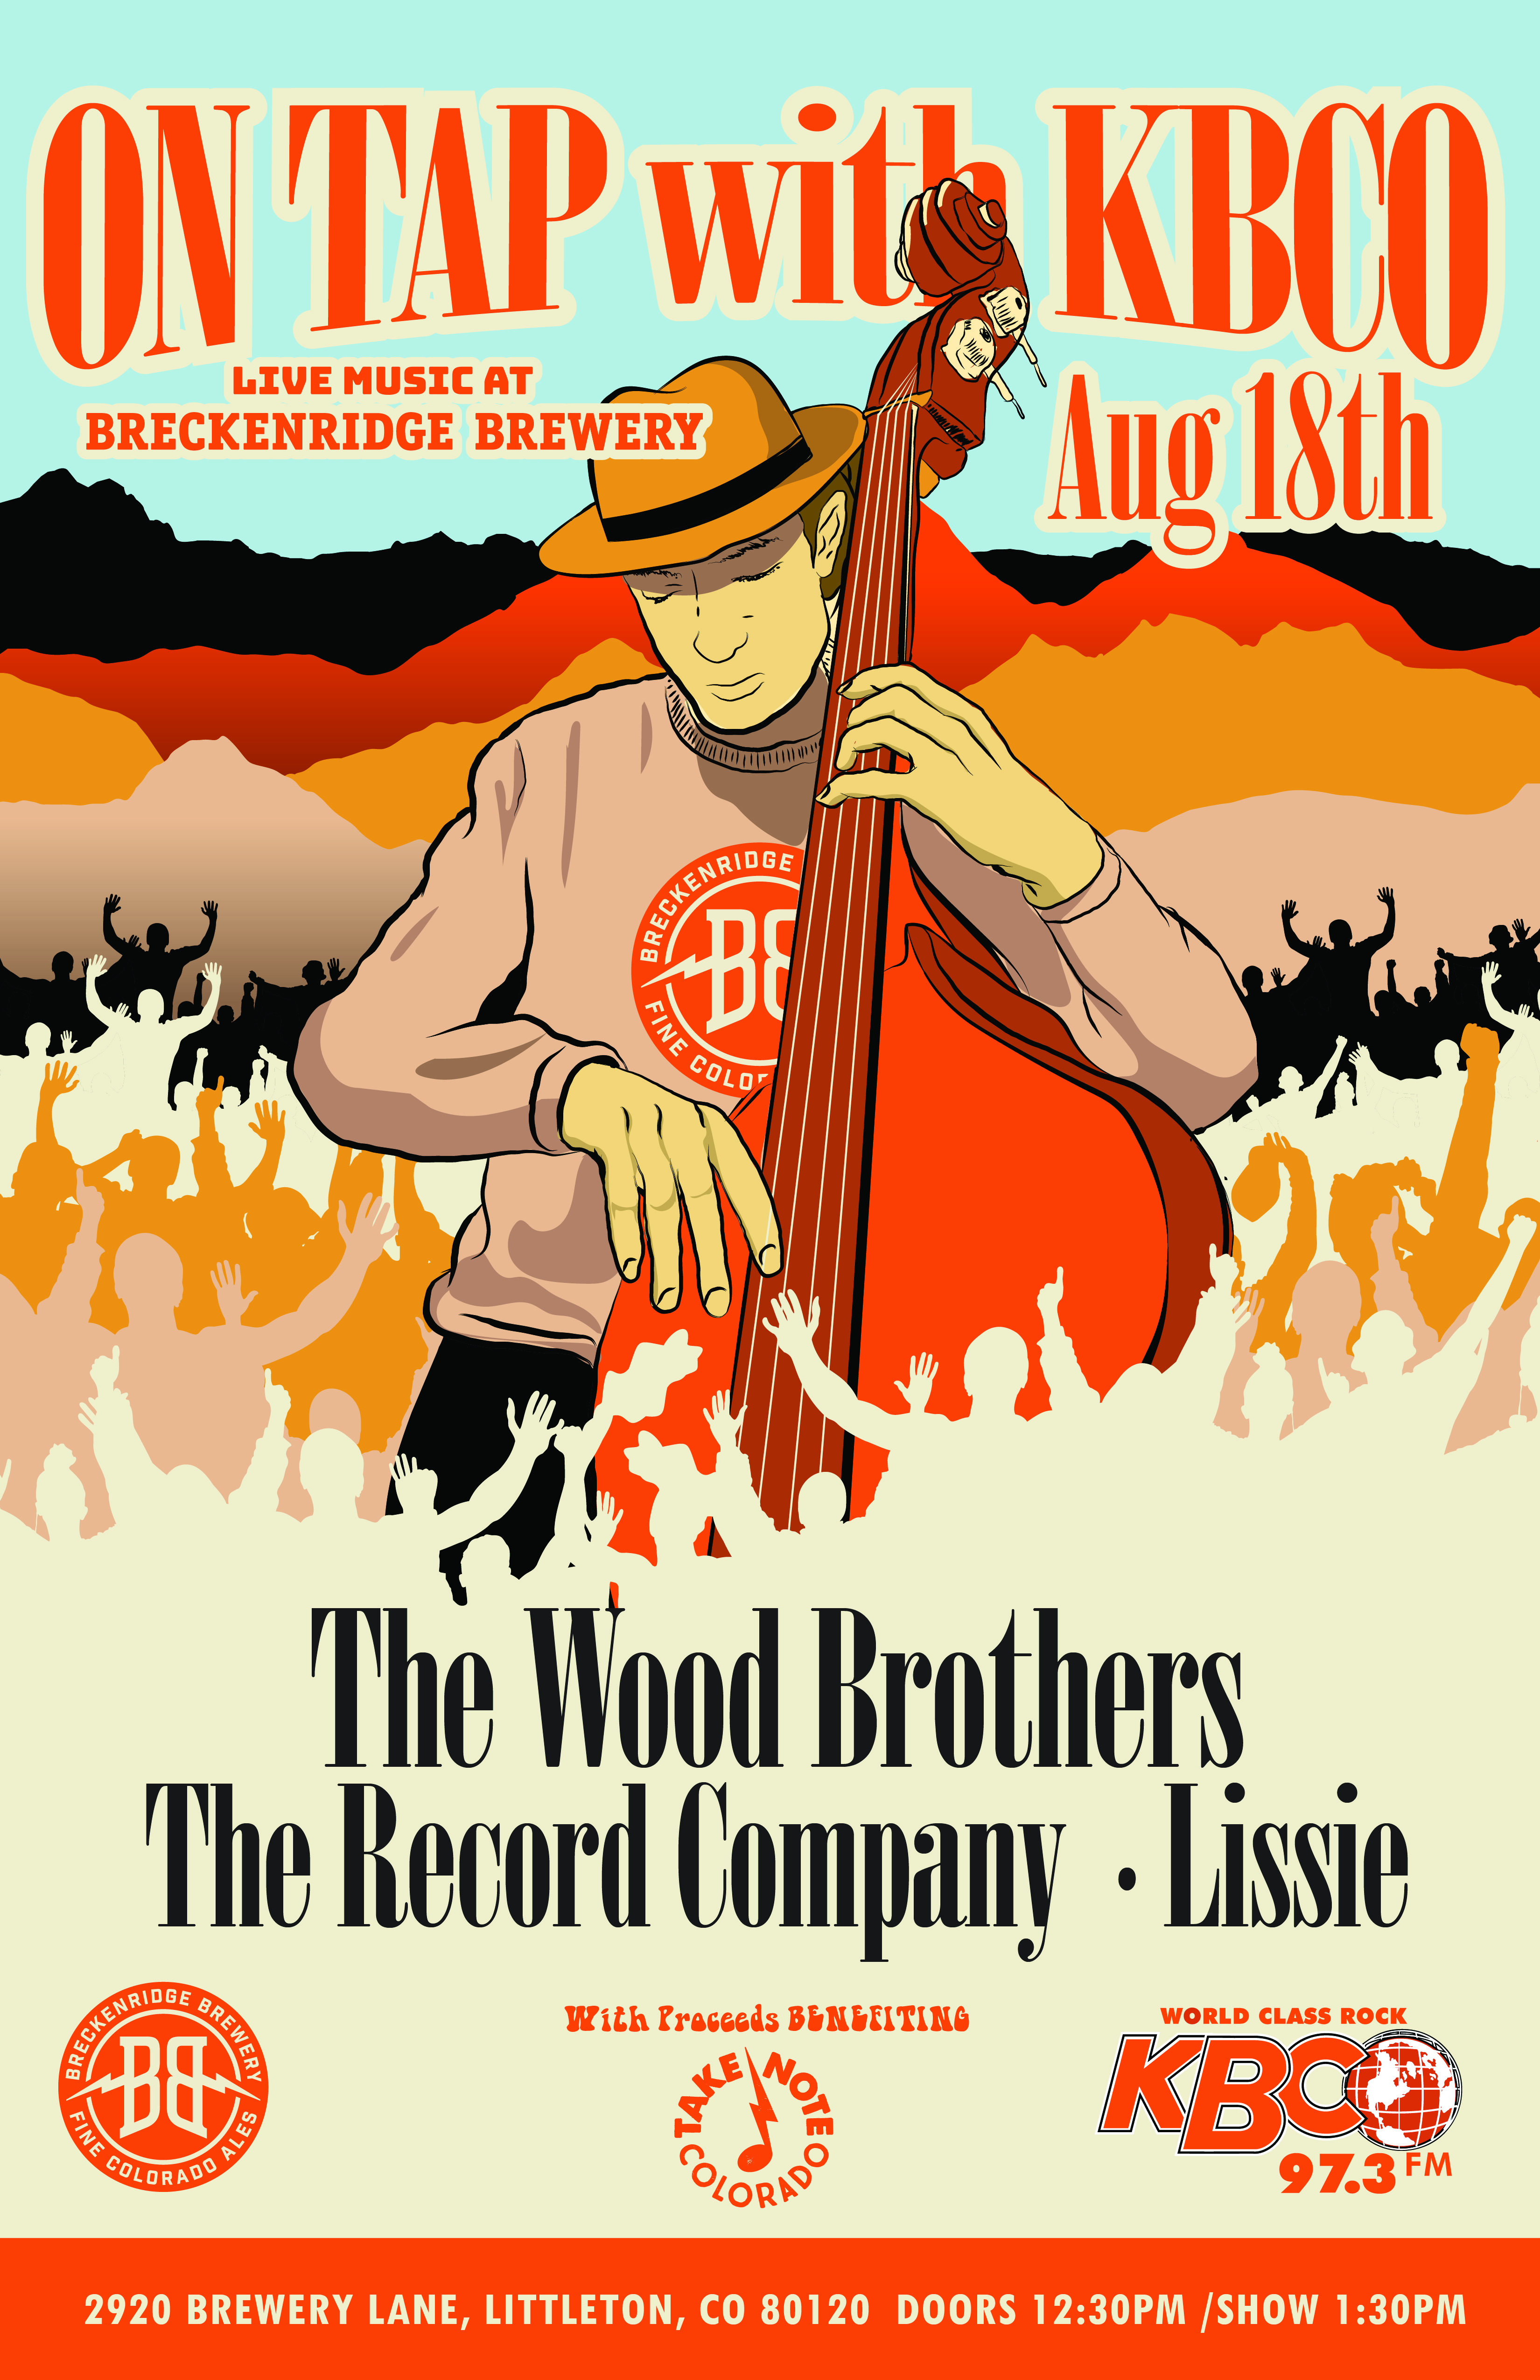 "Breckenridge Brewery ""On Tap with KBCO"" to feature Wood Brothers and Record Company"